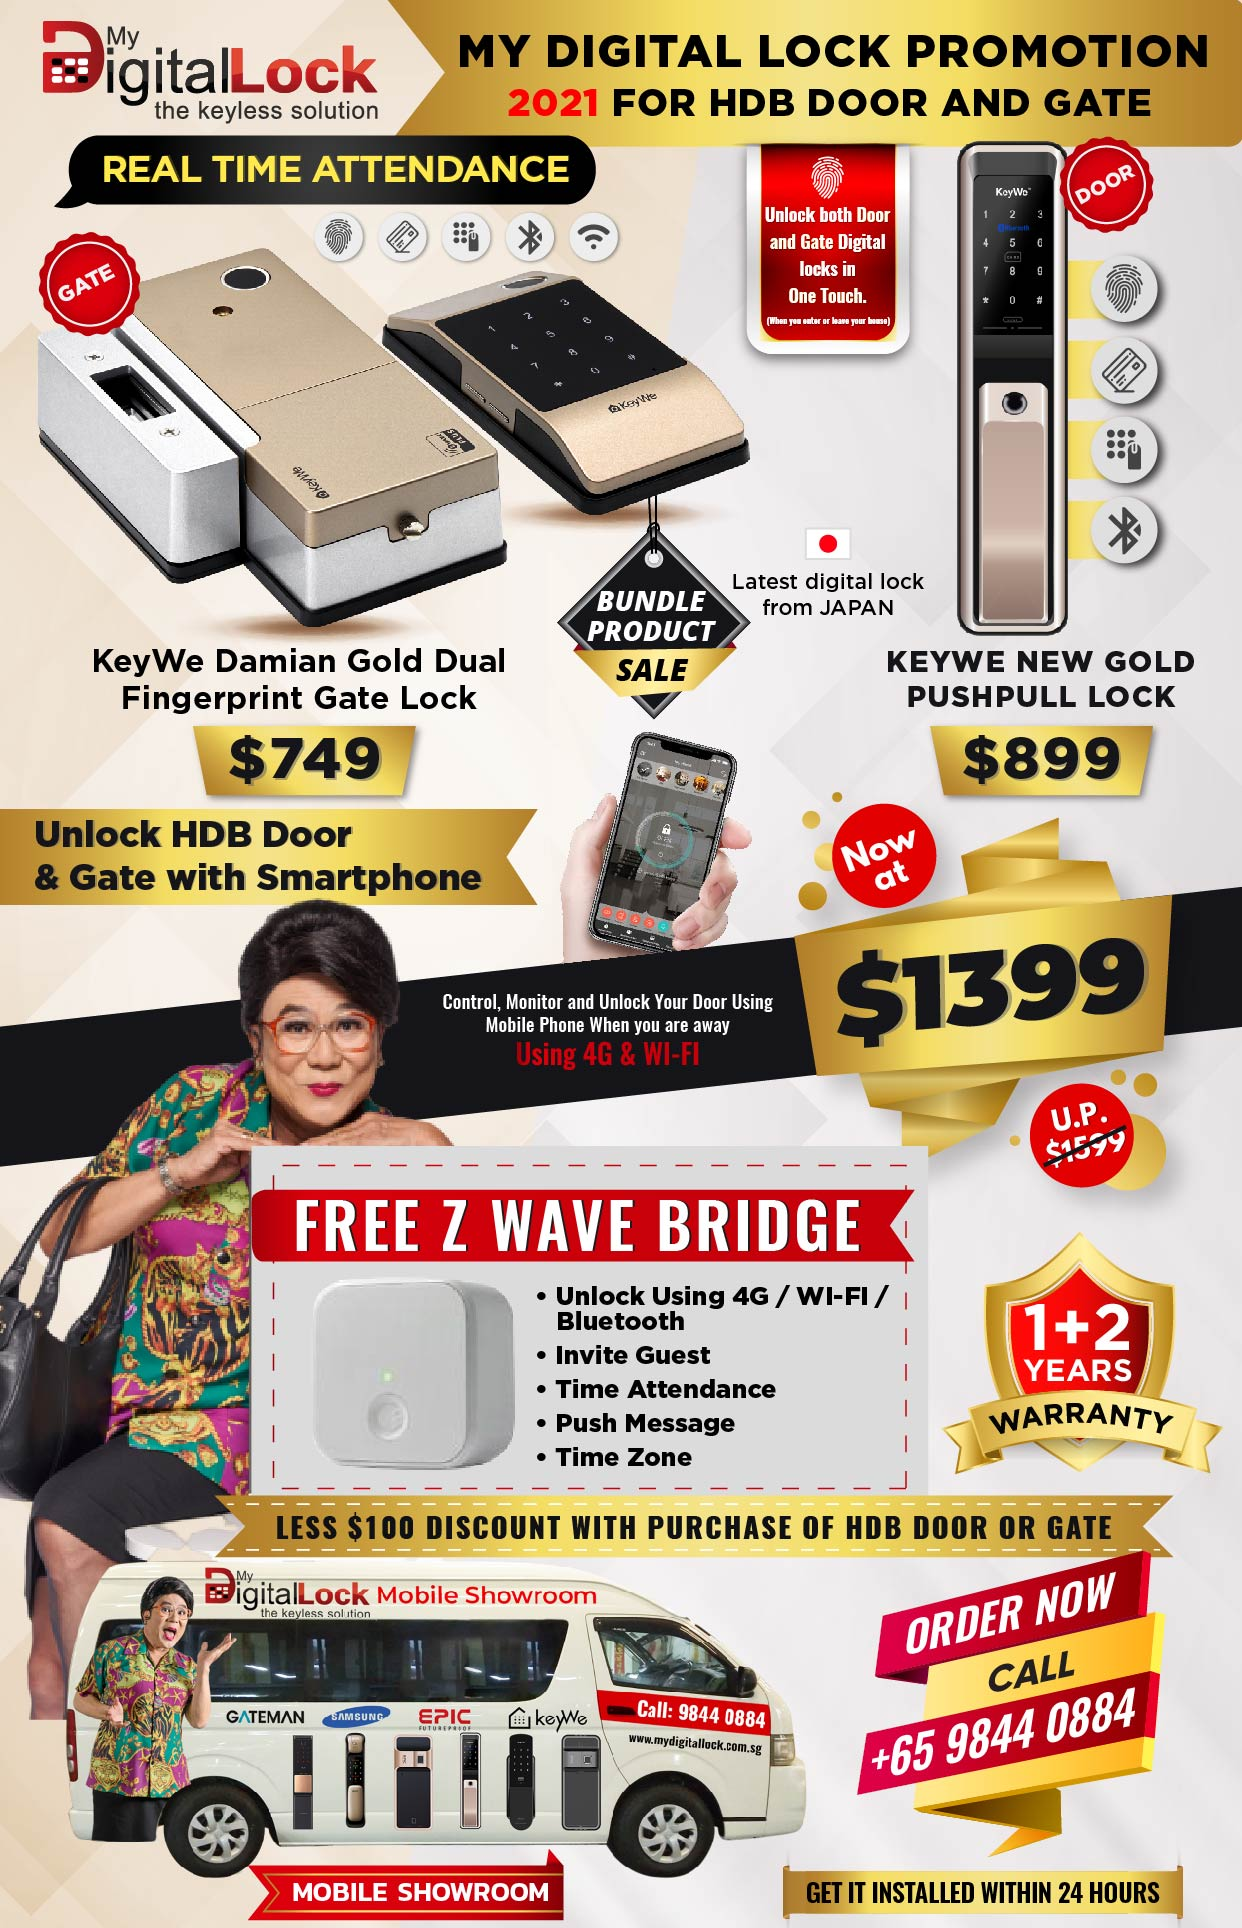 My-Digital-Lock-Promotion-for-2021-HDB-Door-and-Gate